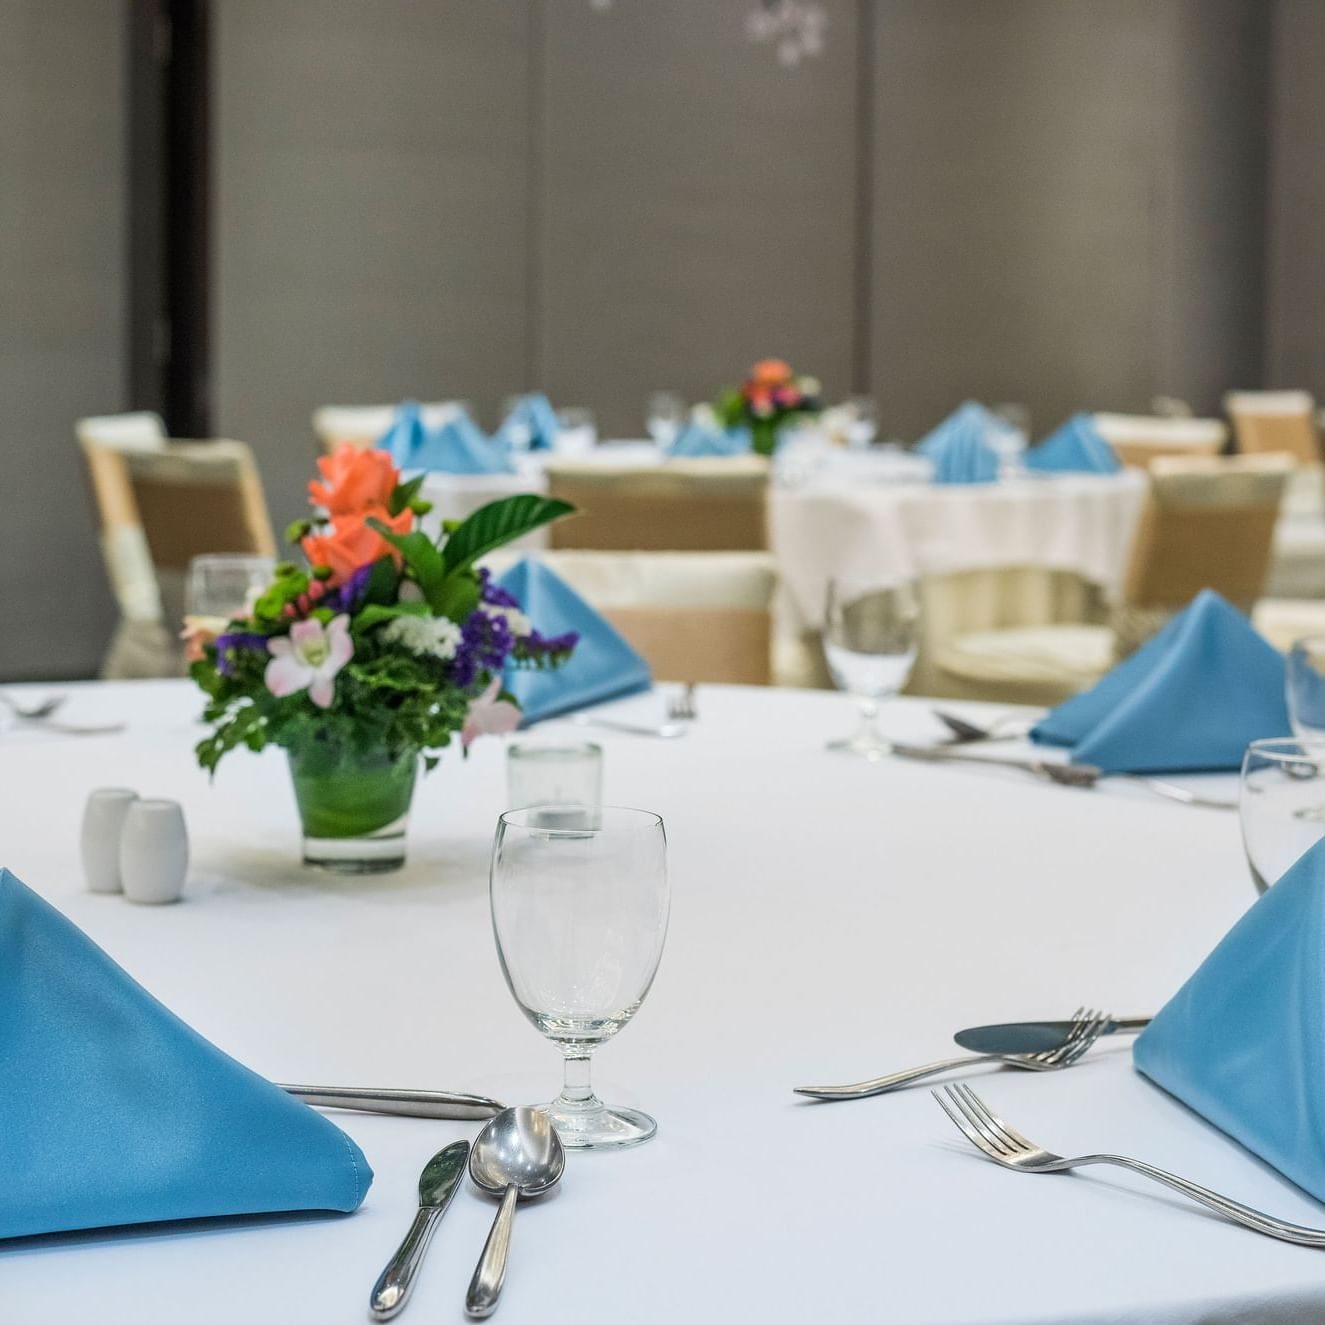 Table setting in an event at Chatrium Residence Sathon Bangkok